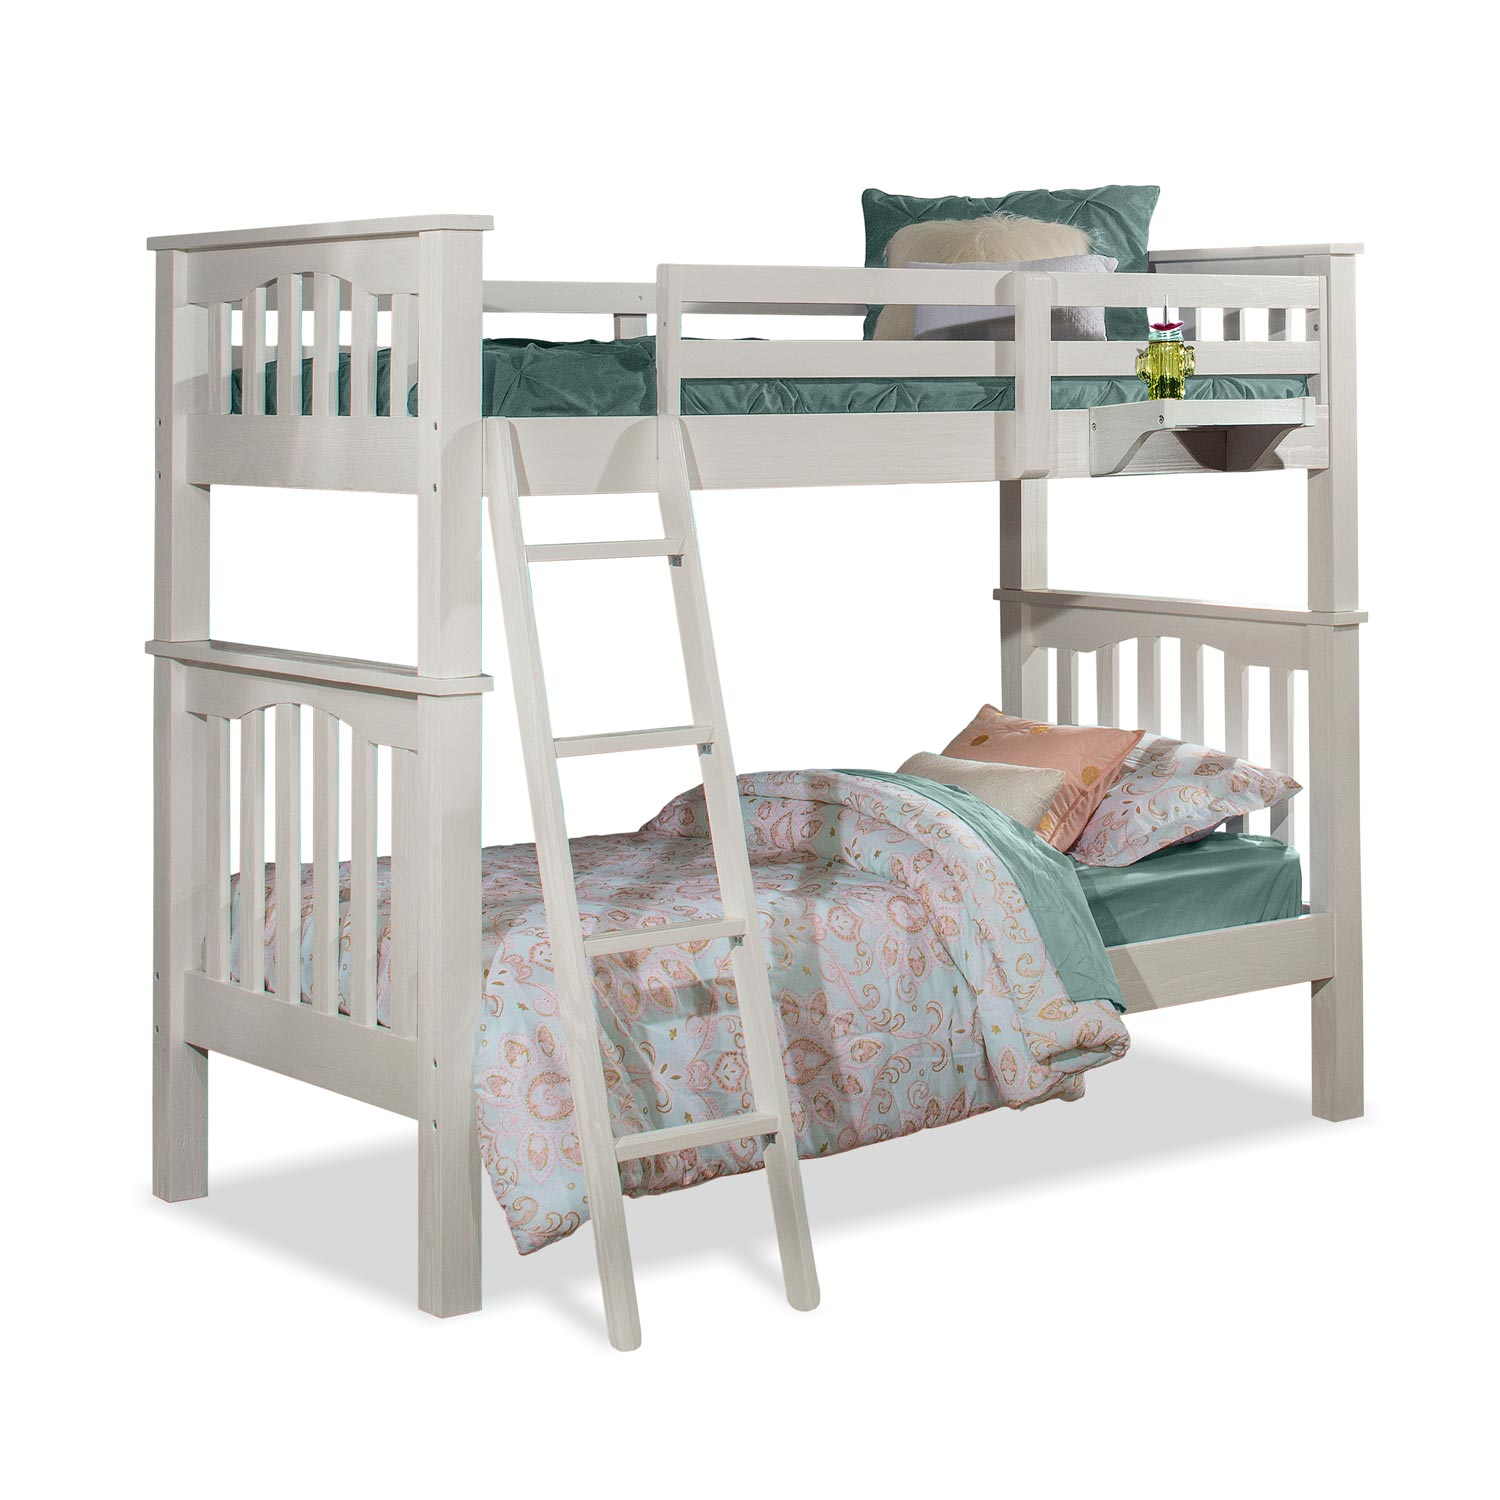 NE Kids Highlands Harper Twin/Twin Bunk Bed with Hanging Nightstand - White Finish